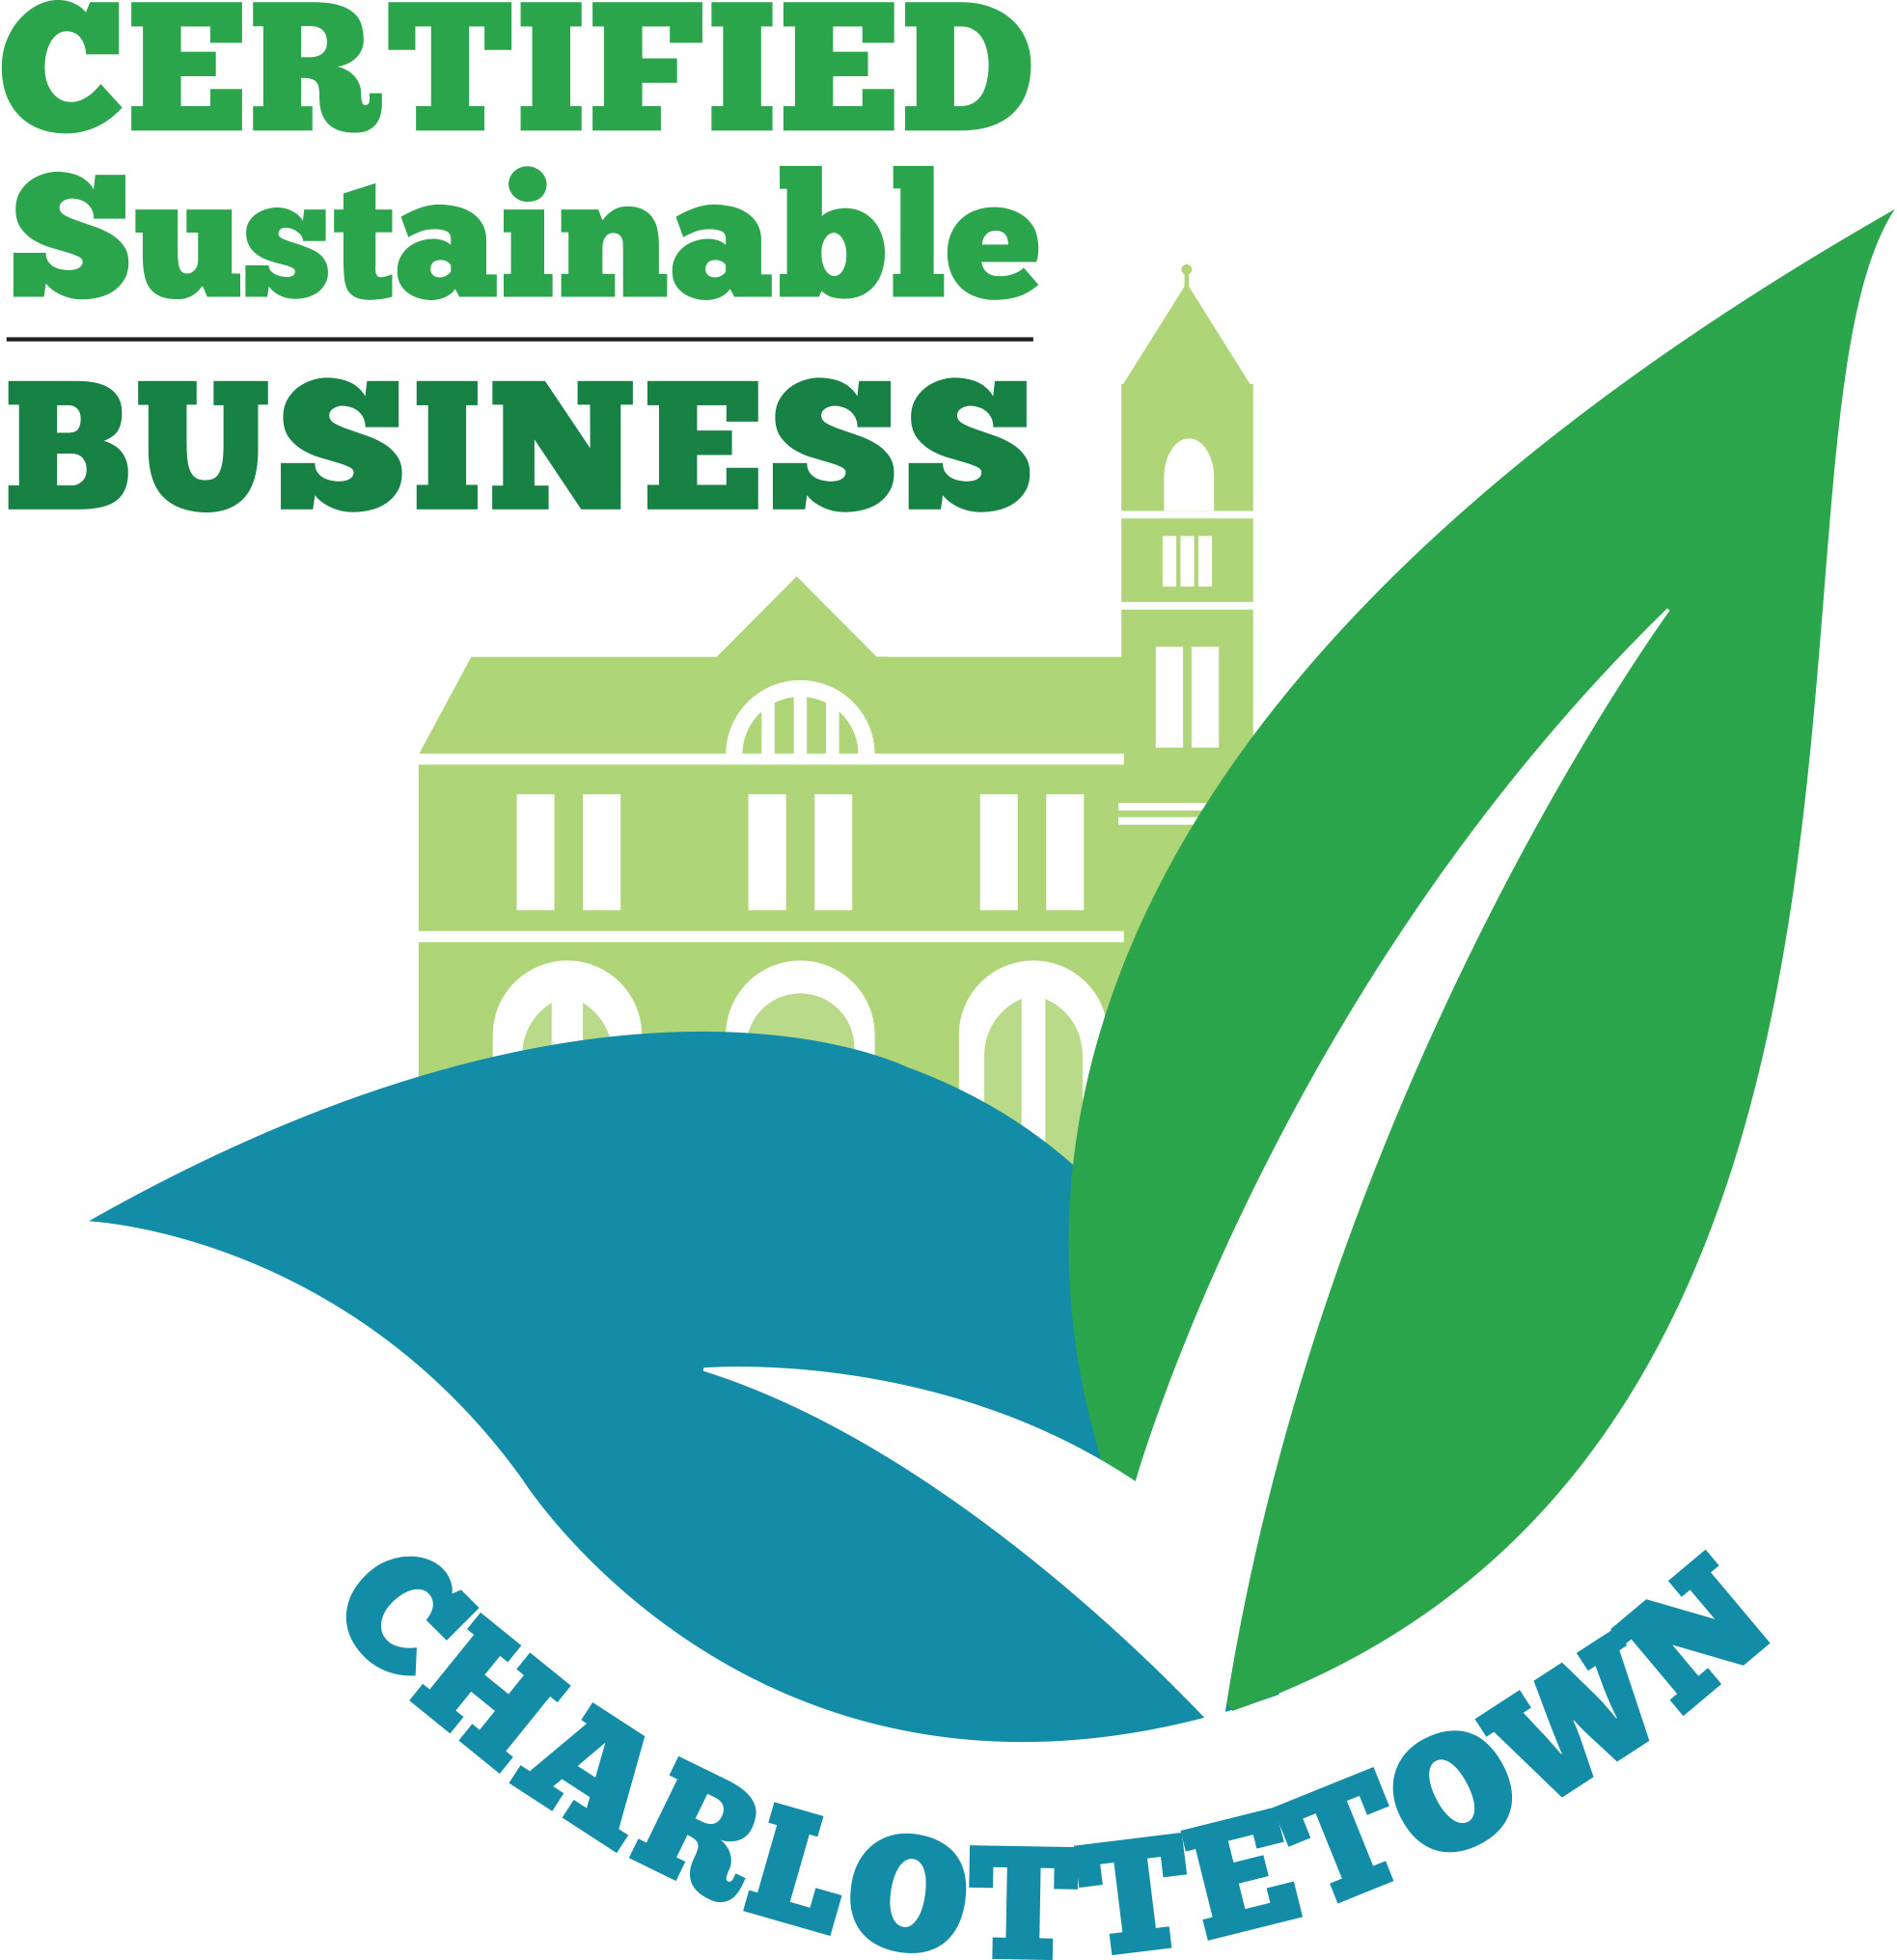 City of charlottetown introduces new sustainable business city of charlottetown introduces new sustainable business certification program 1betcityfo Image collections